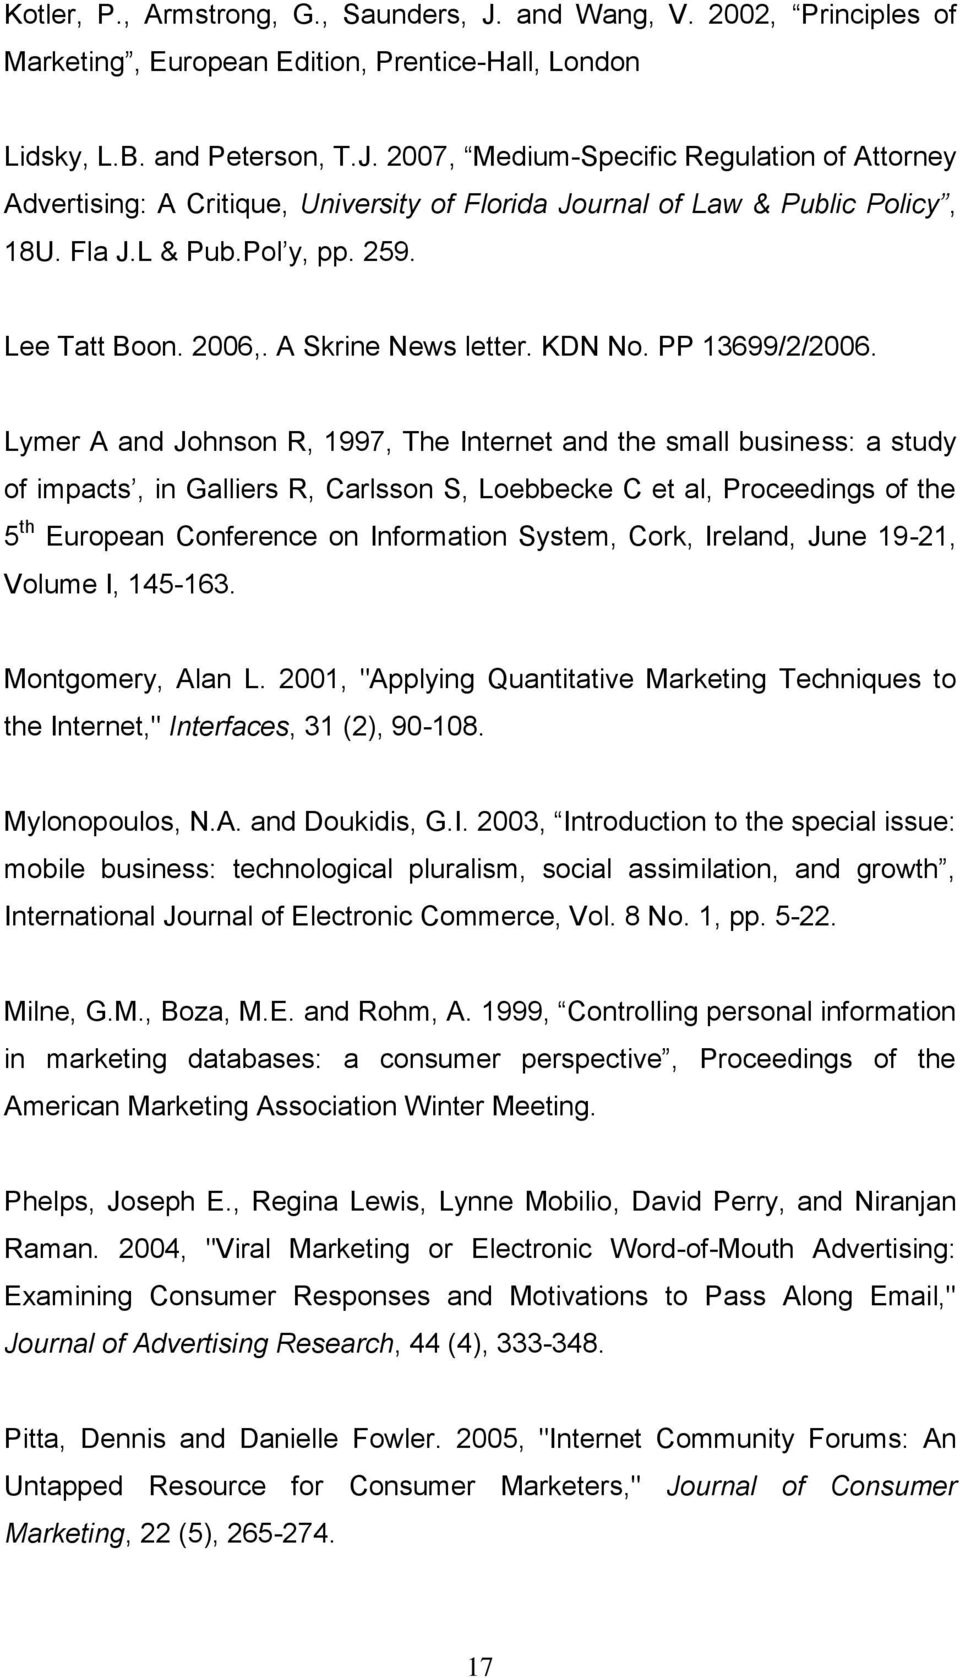 Lymer A and Johnson R, 1997, The Internet and the small business: a study of impacts, in Galliers R, Carlsson S, Loebbecke C et al, Proceedings of the 5 th European Conference on Information System,